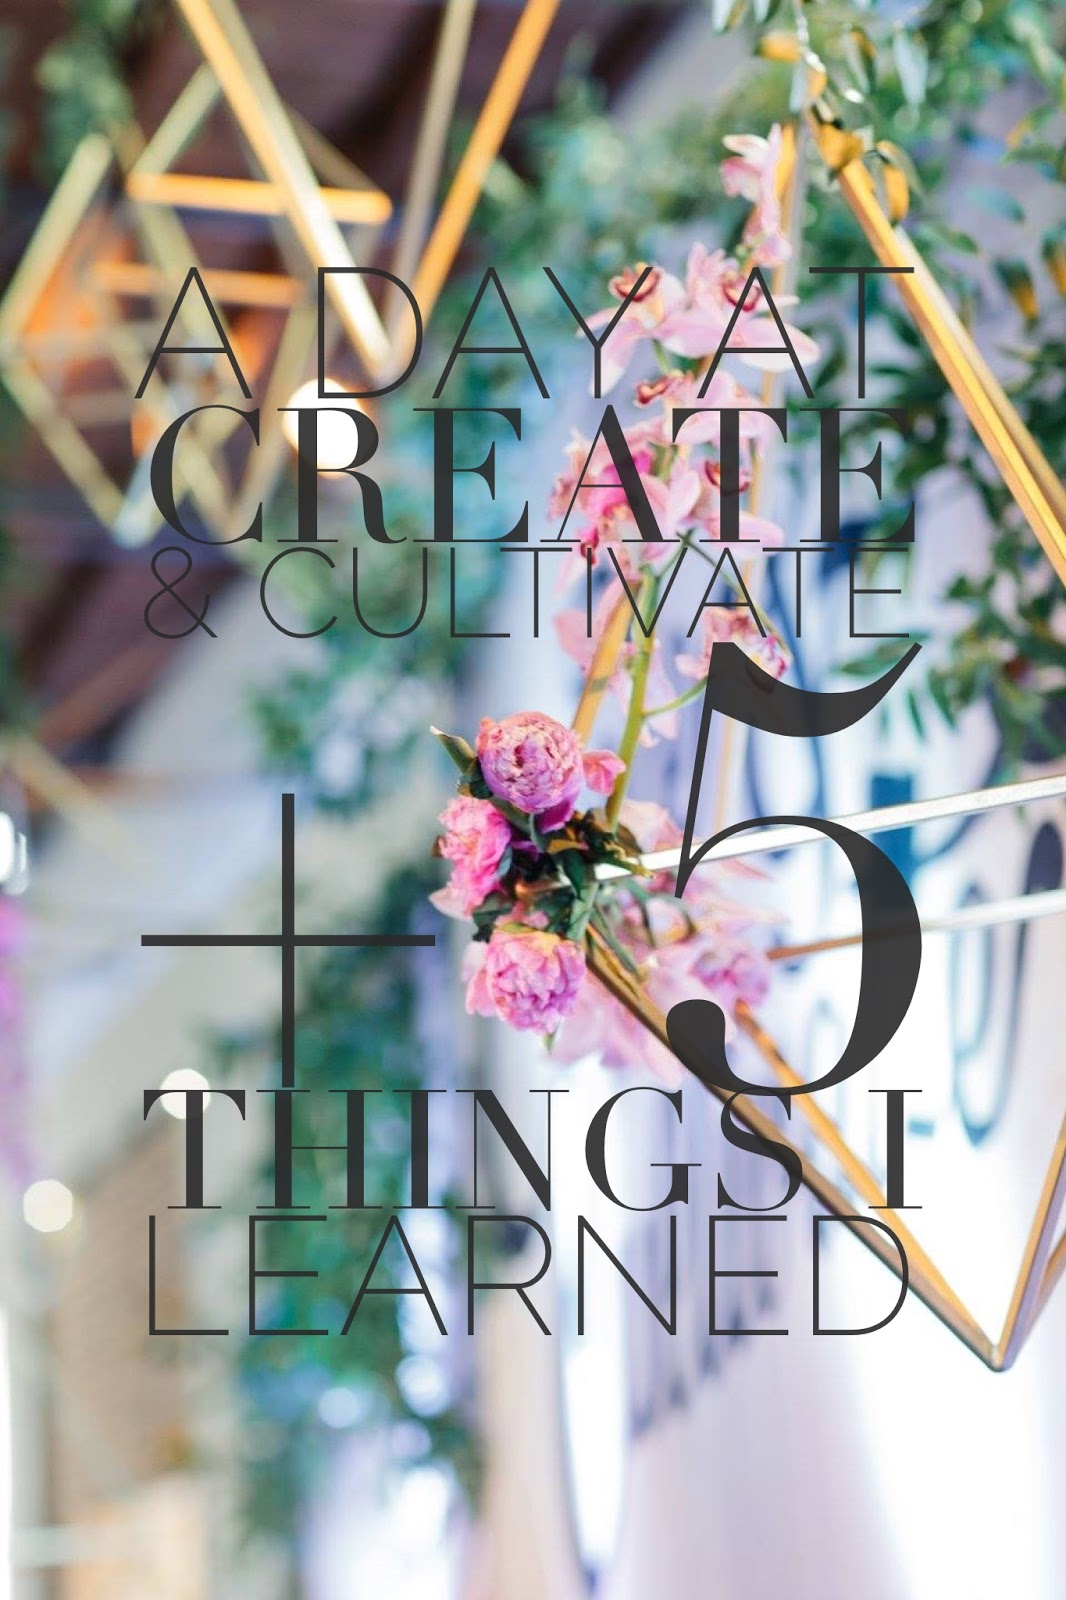 A Day At Create and Cultivate + 5 Things I Learned